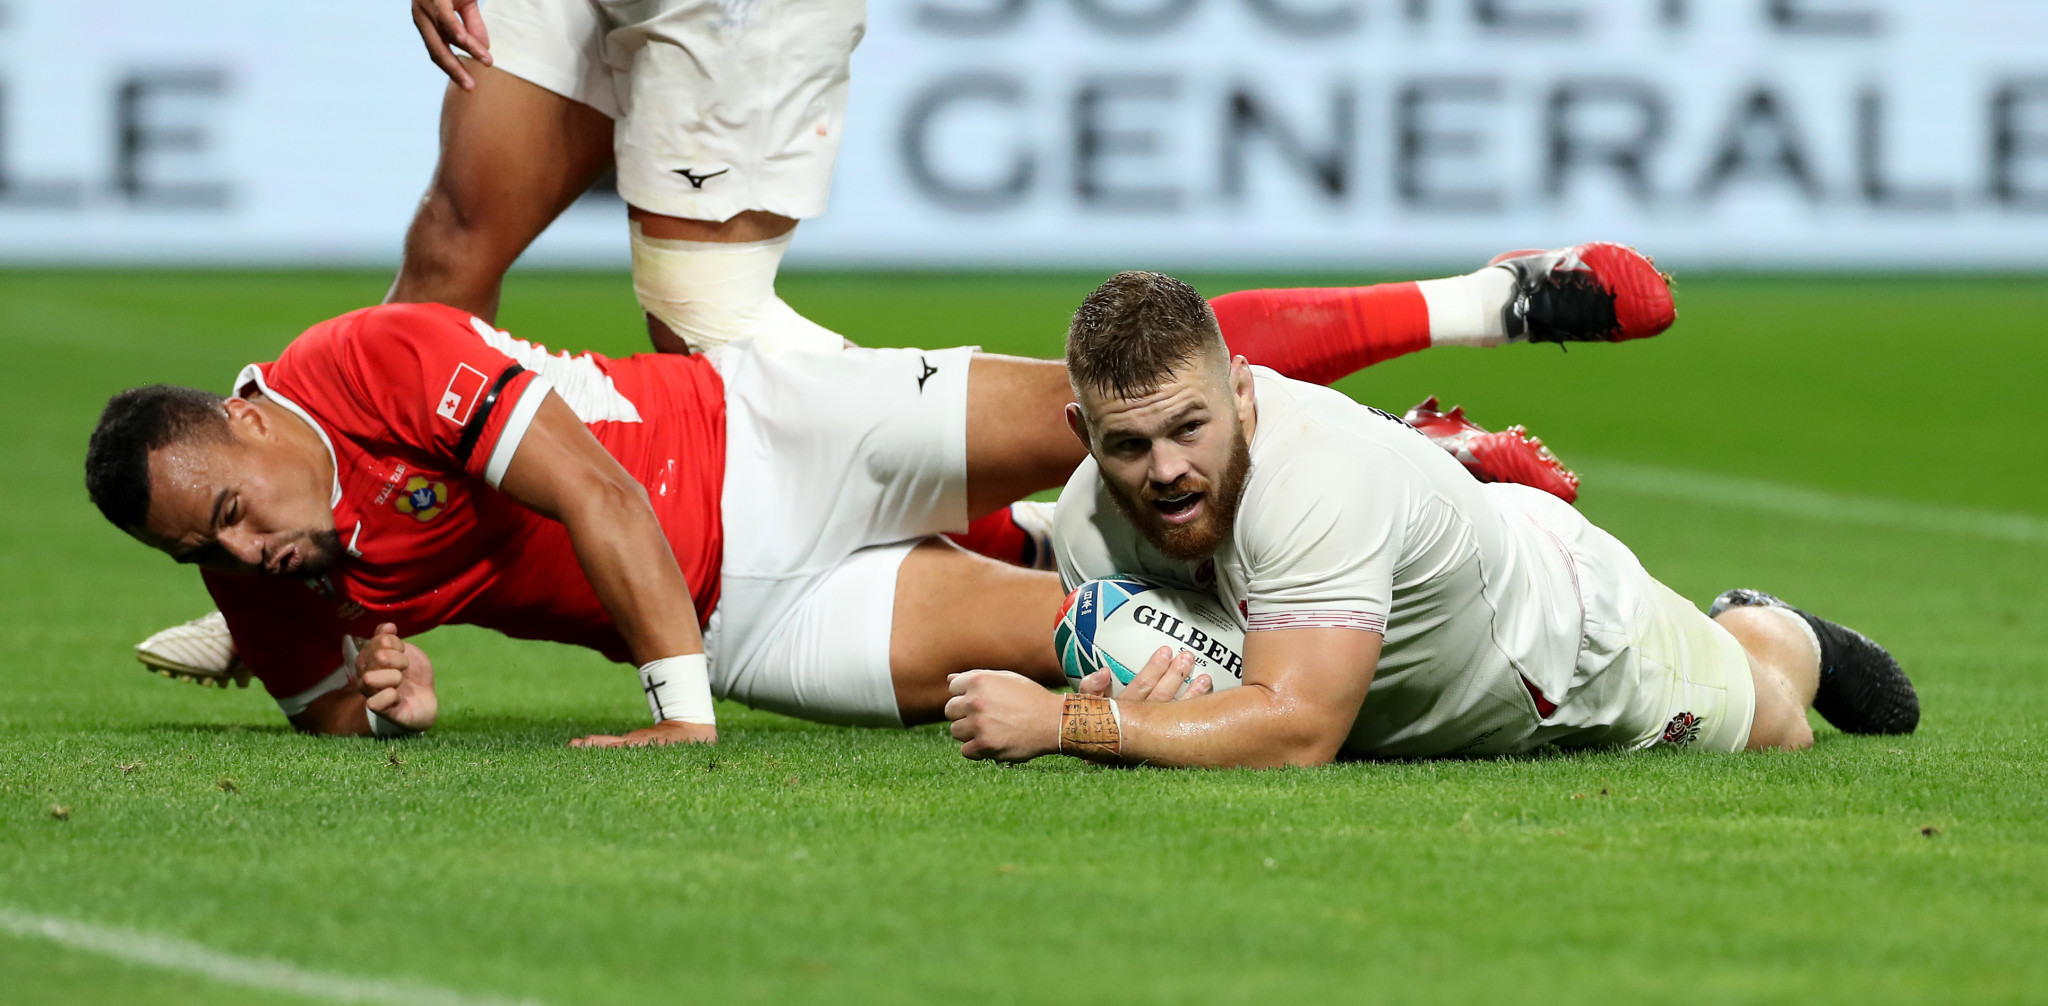 Luke Cowan-Dickie's try secured an English bonus point ©Getty Images